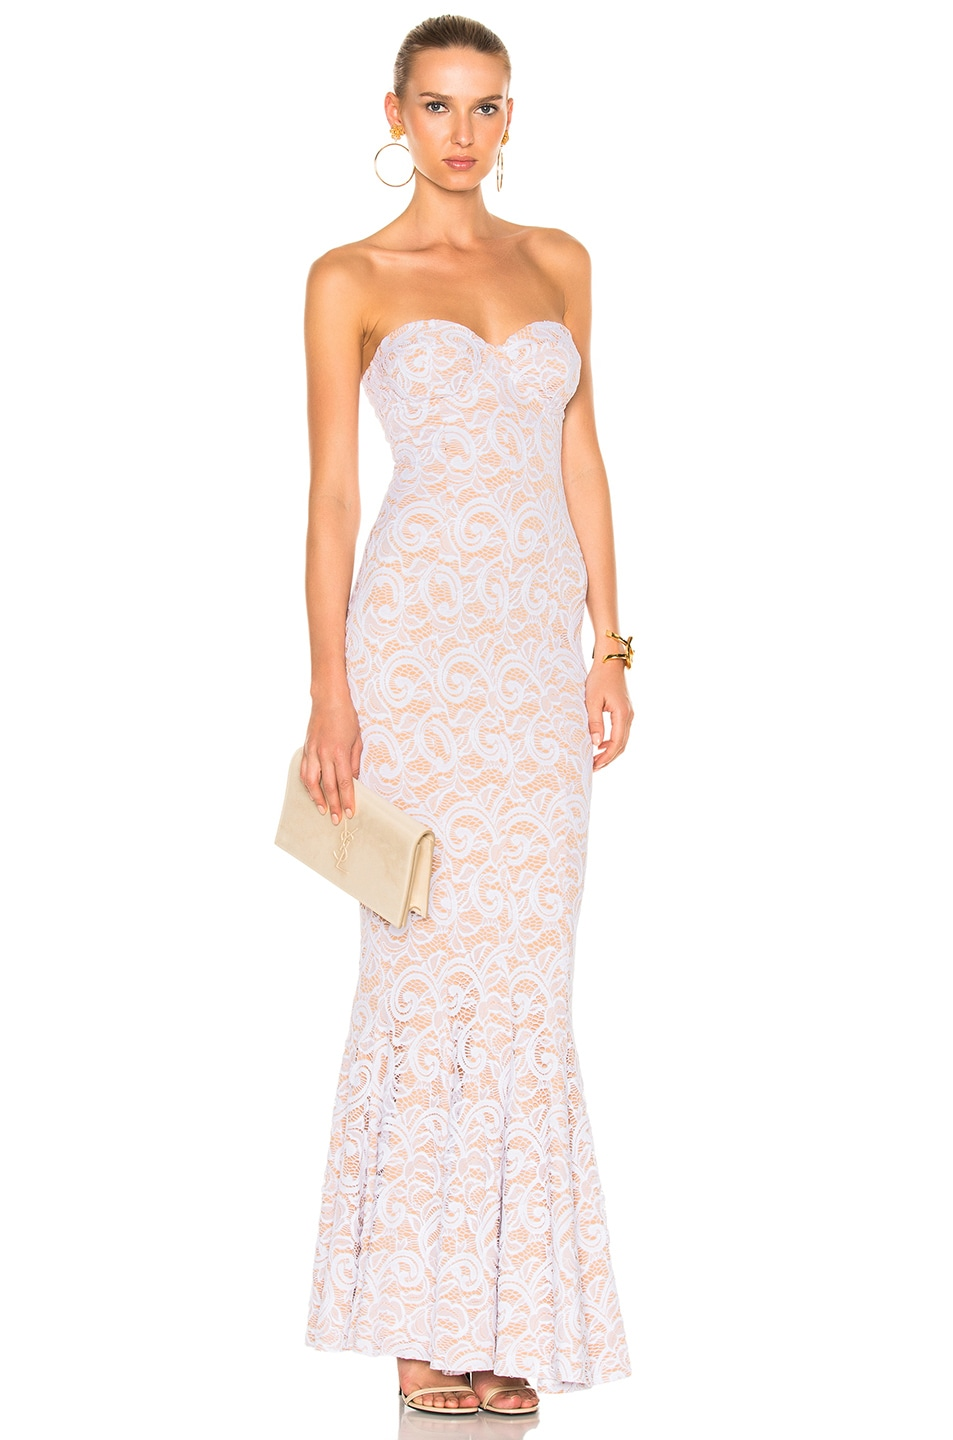 Norma Kamali Corset Gown in White Lace | FWRD